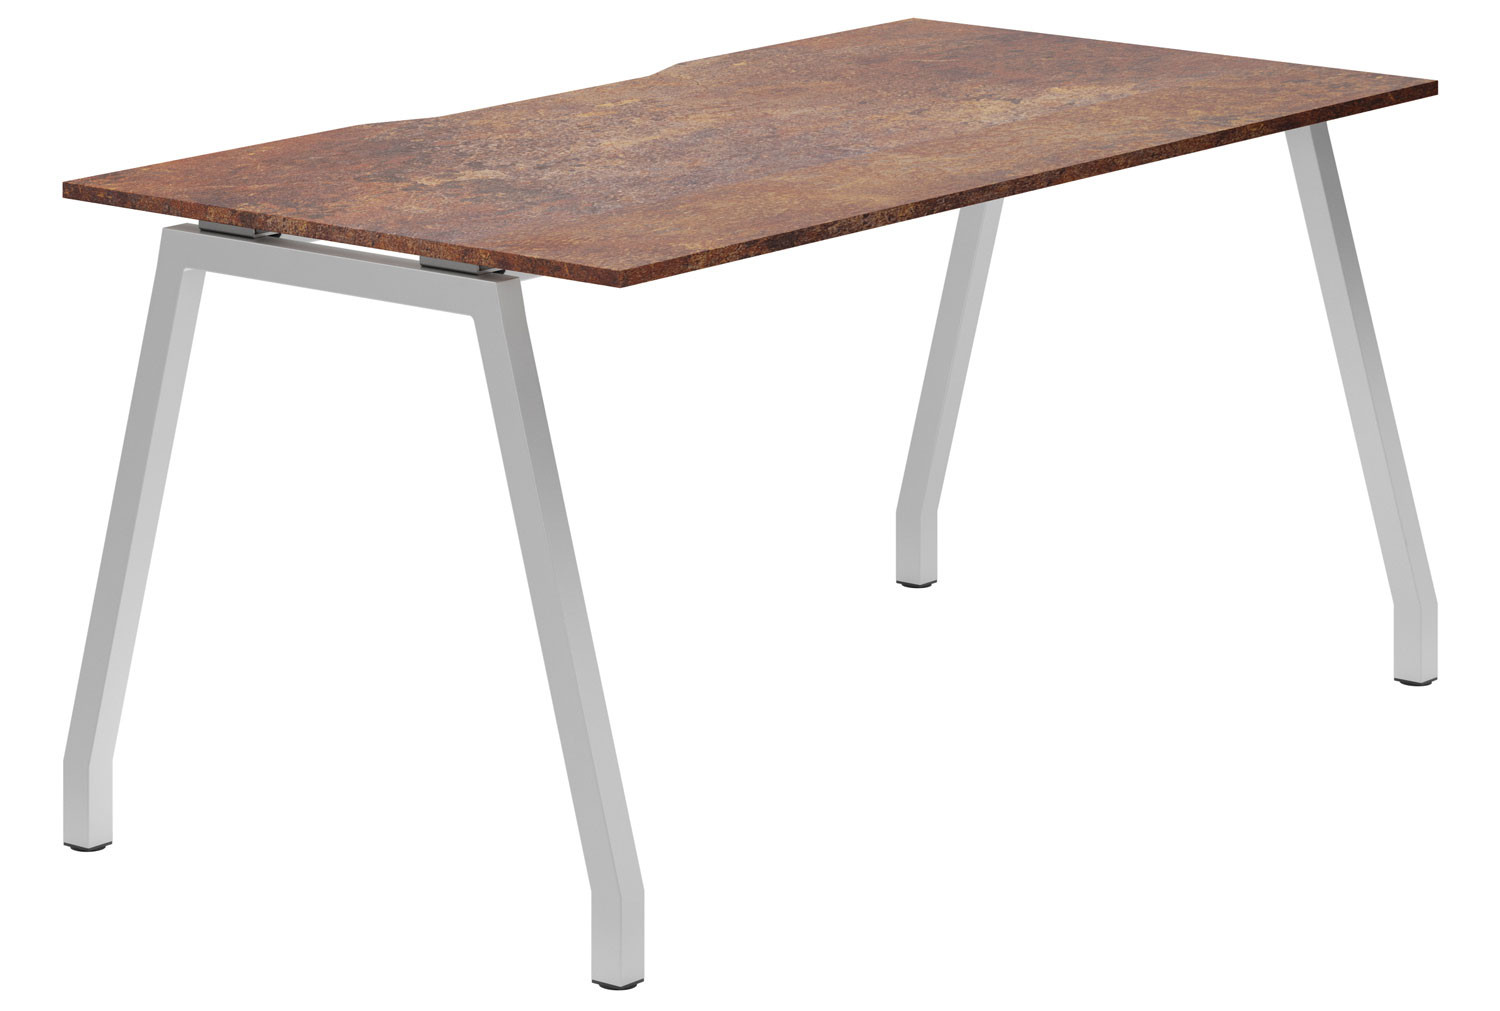 Lasso A-Frame Single Bench Desk (Rusted Steel)